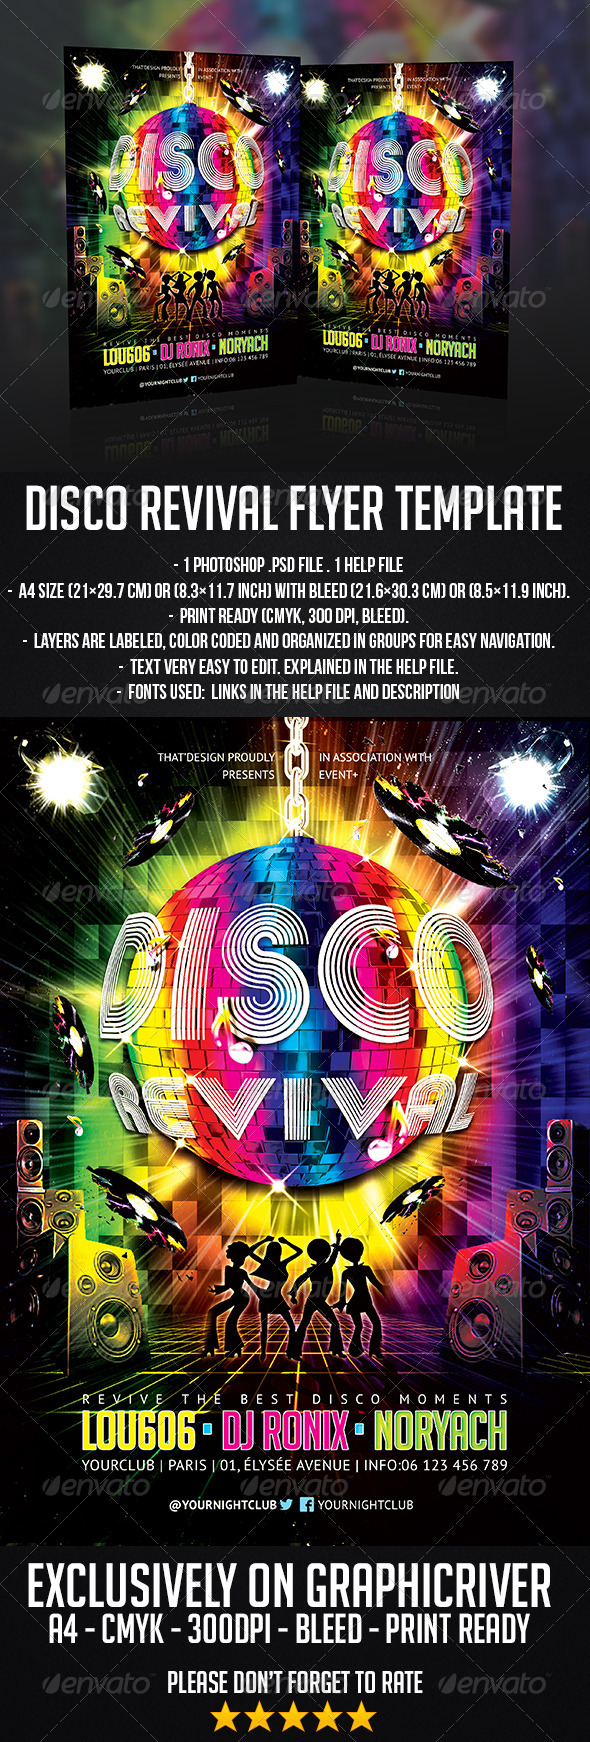 Disco Revival Flyer Template - Clubs & Parties Events